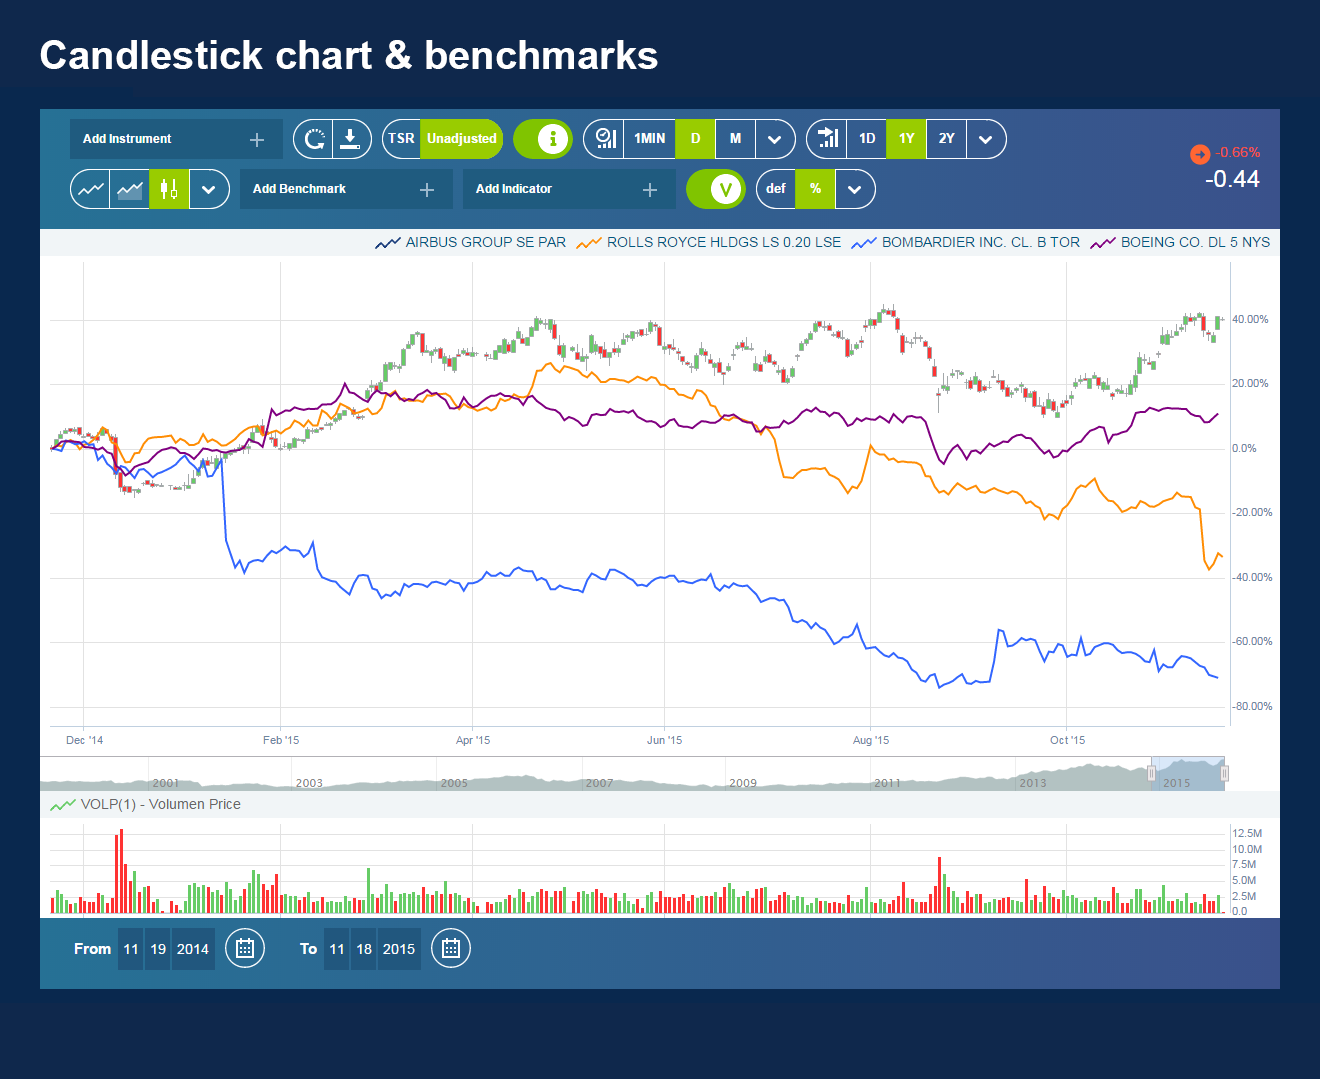 03-Candlestick Chart & Benchmarks